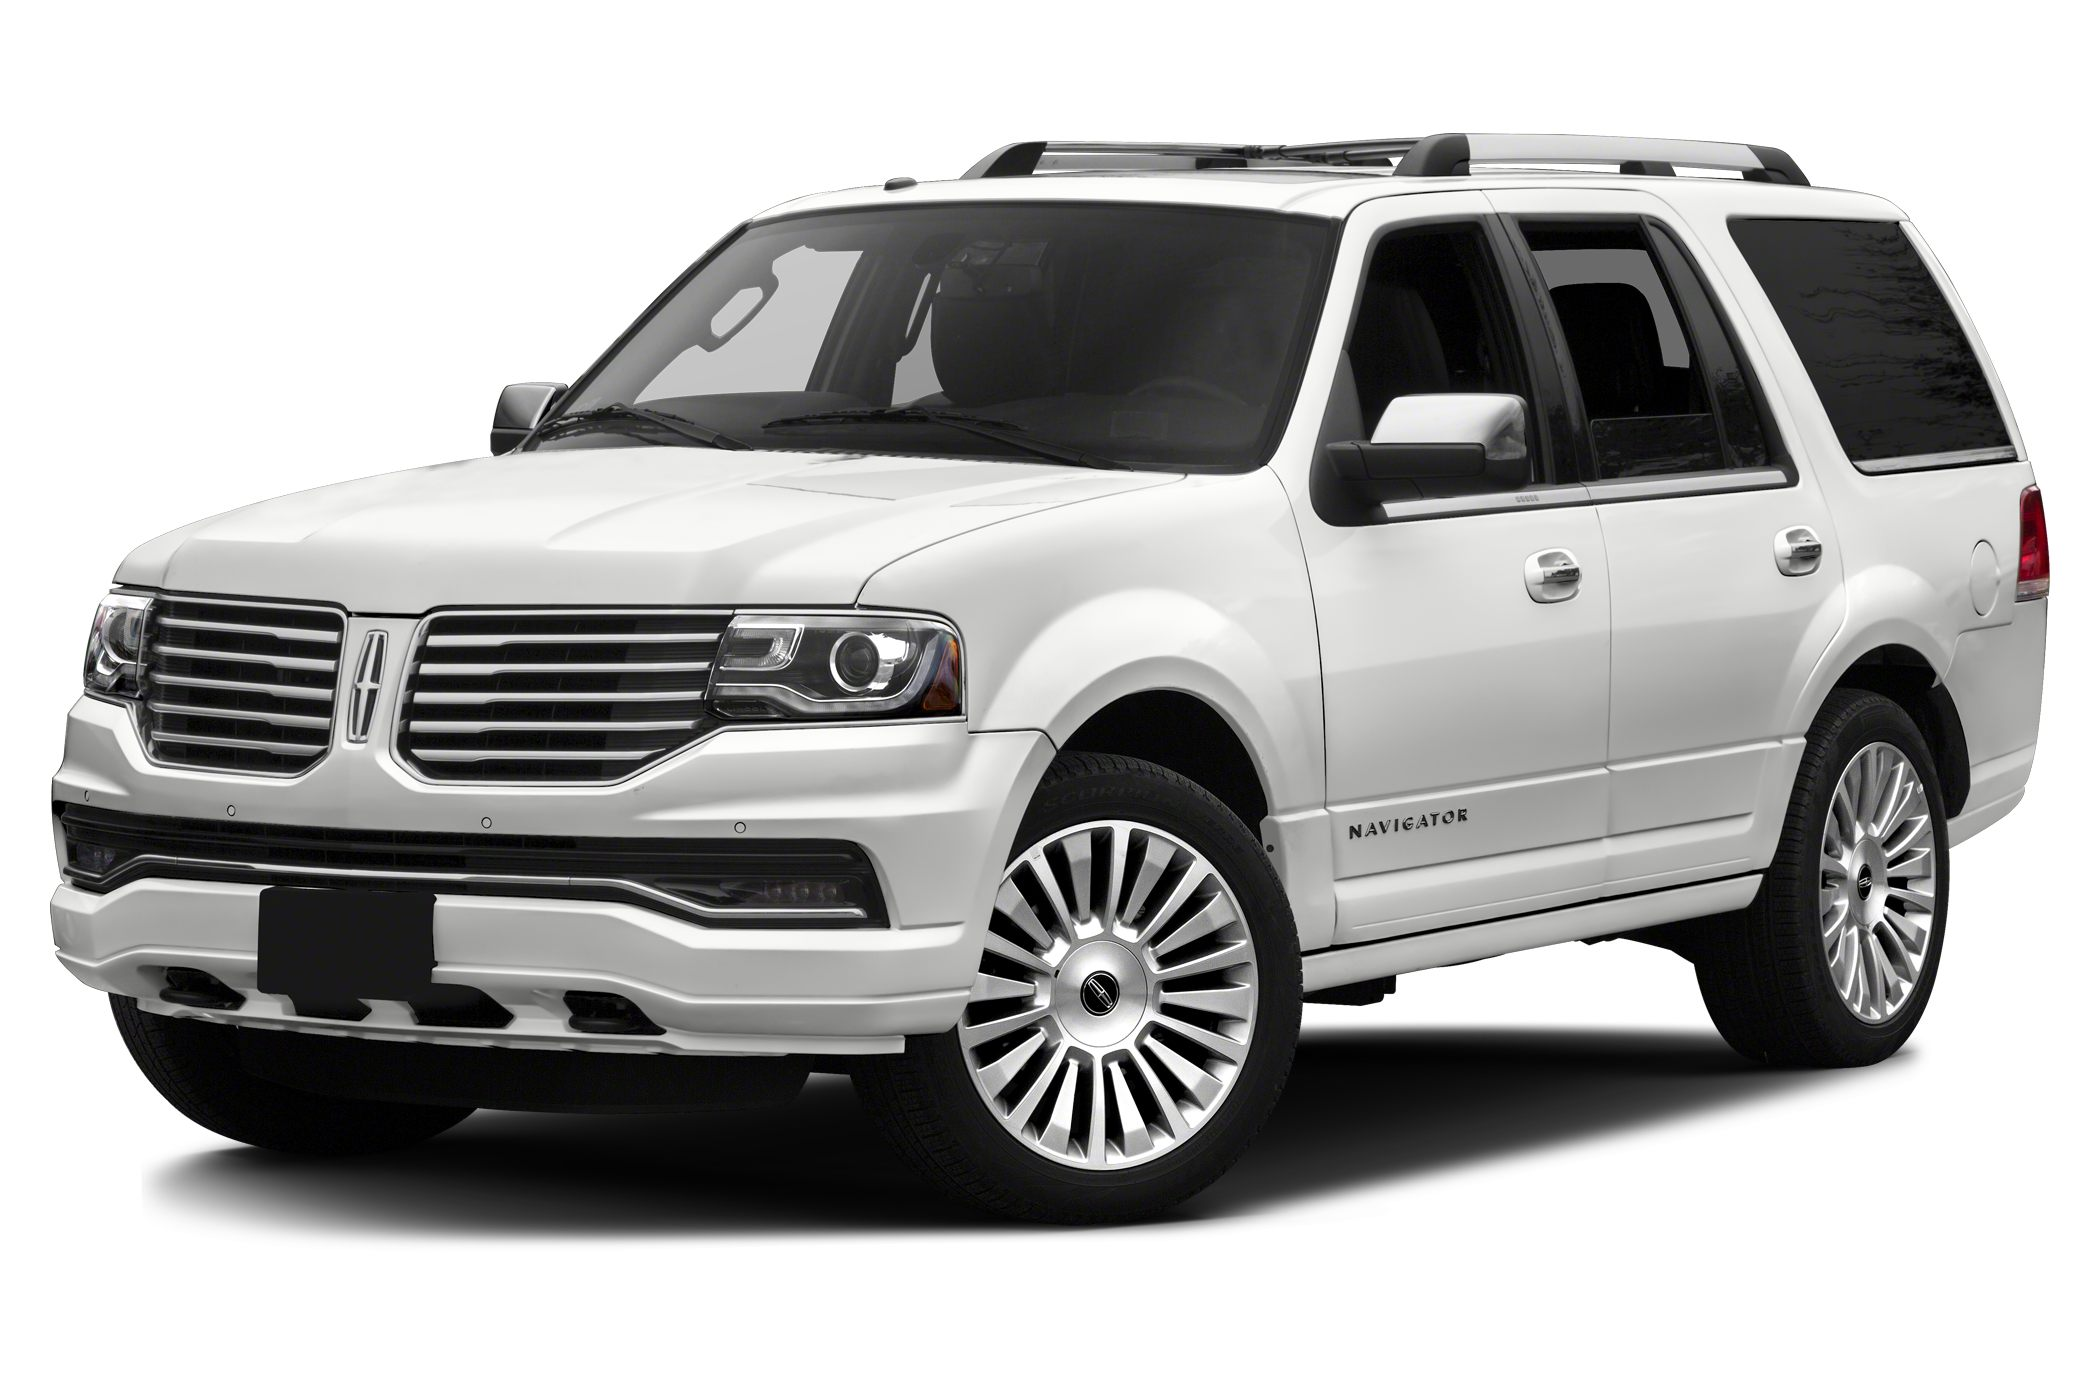 lincoln navigator news photos and buying information autoblog. Black Bedroom Furniture Sets. Home Design Ideas